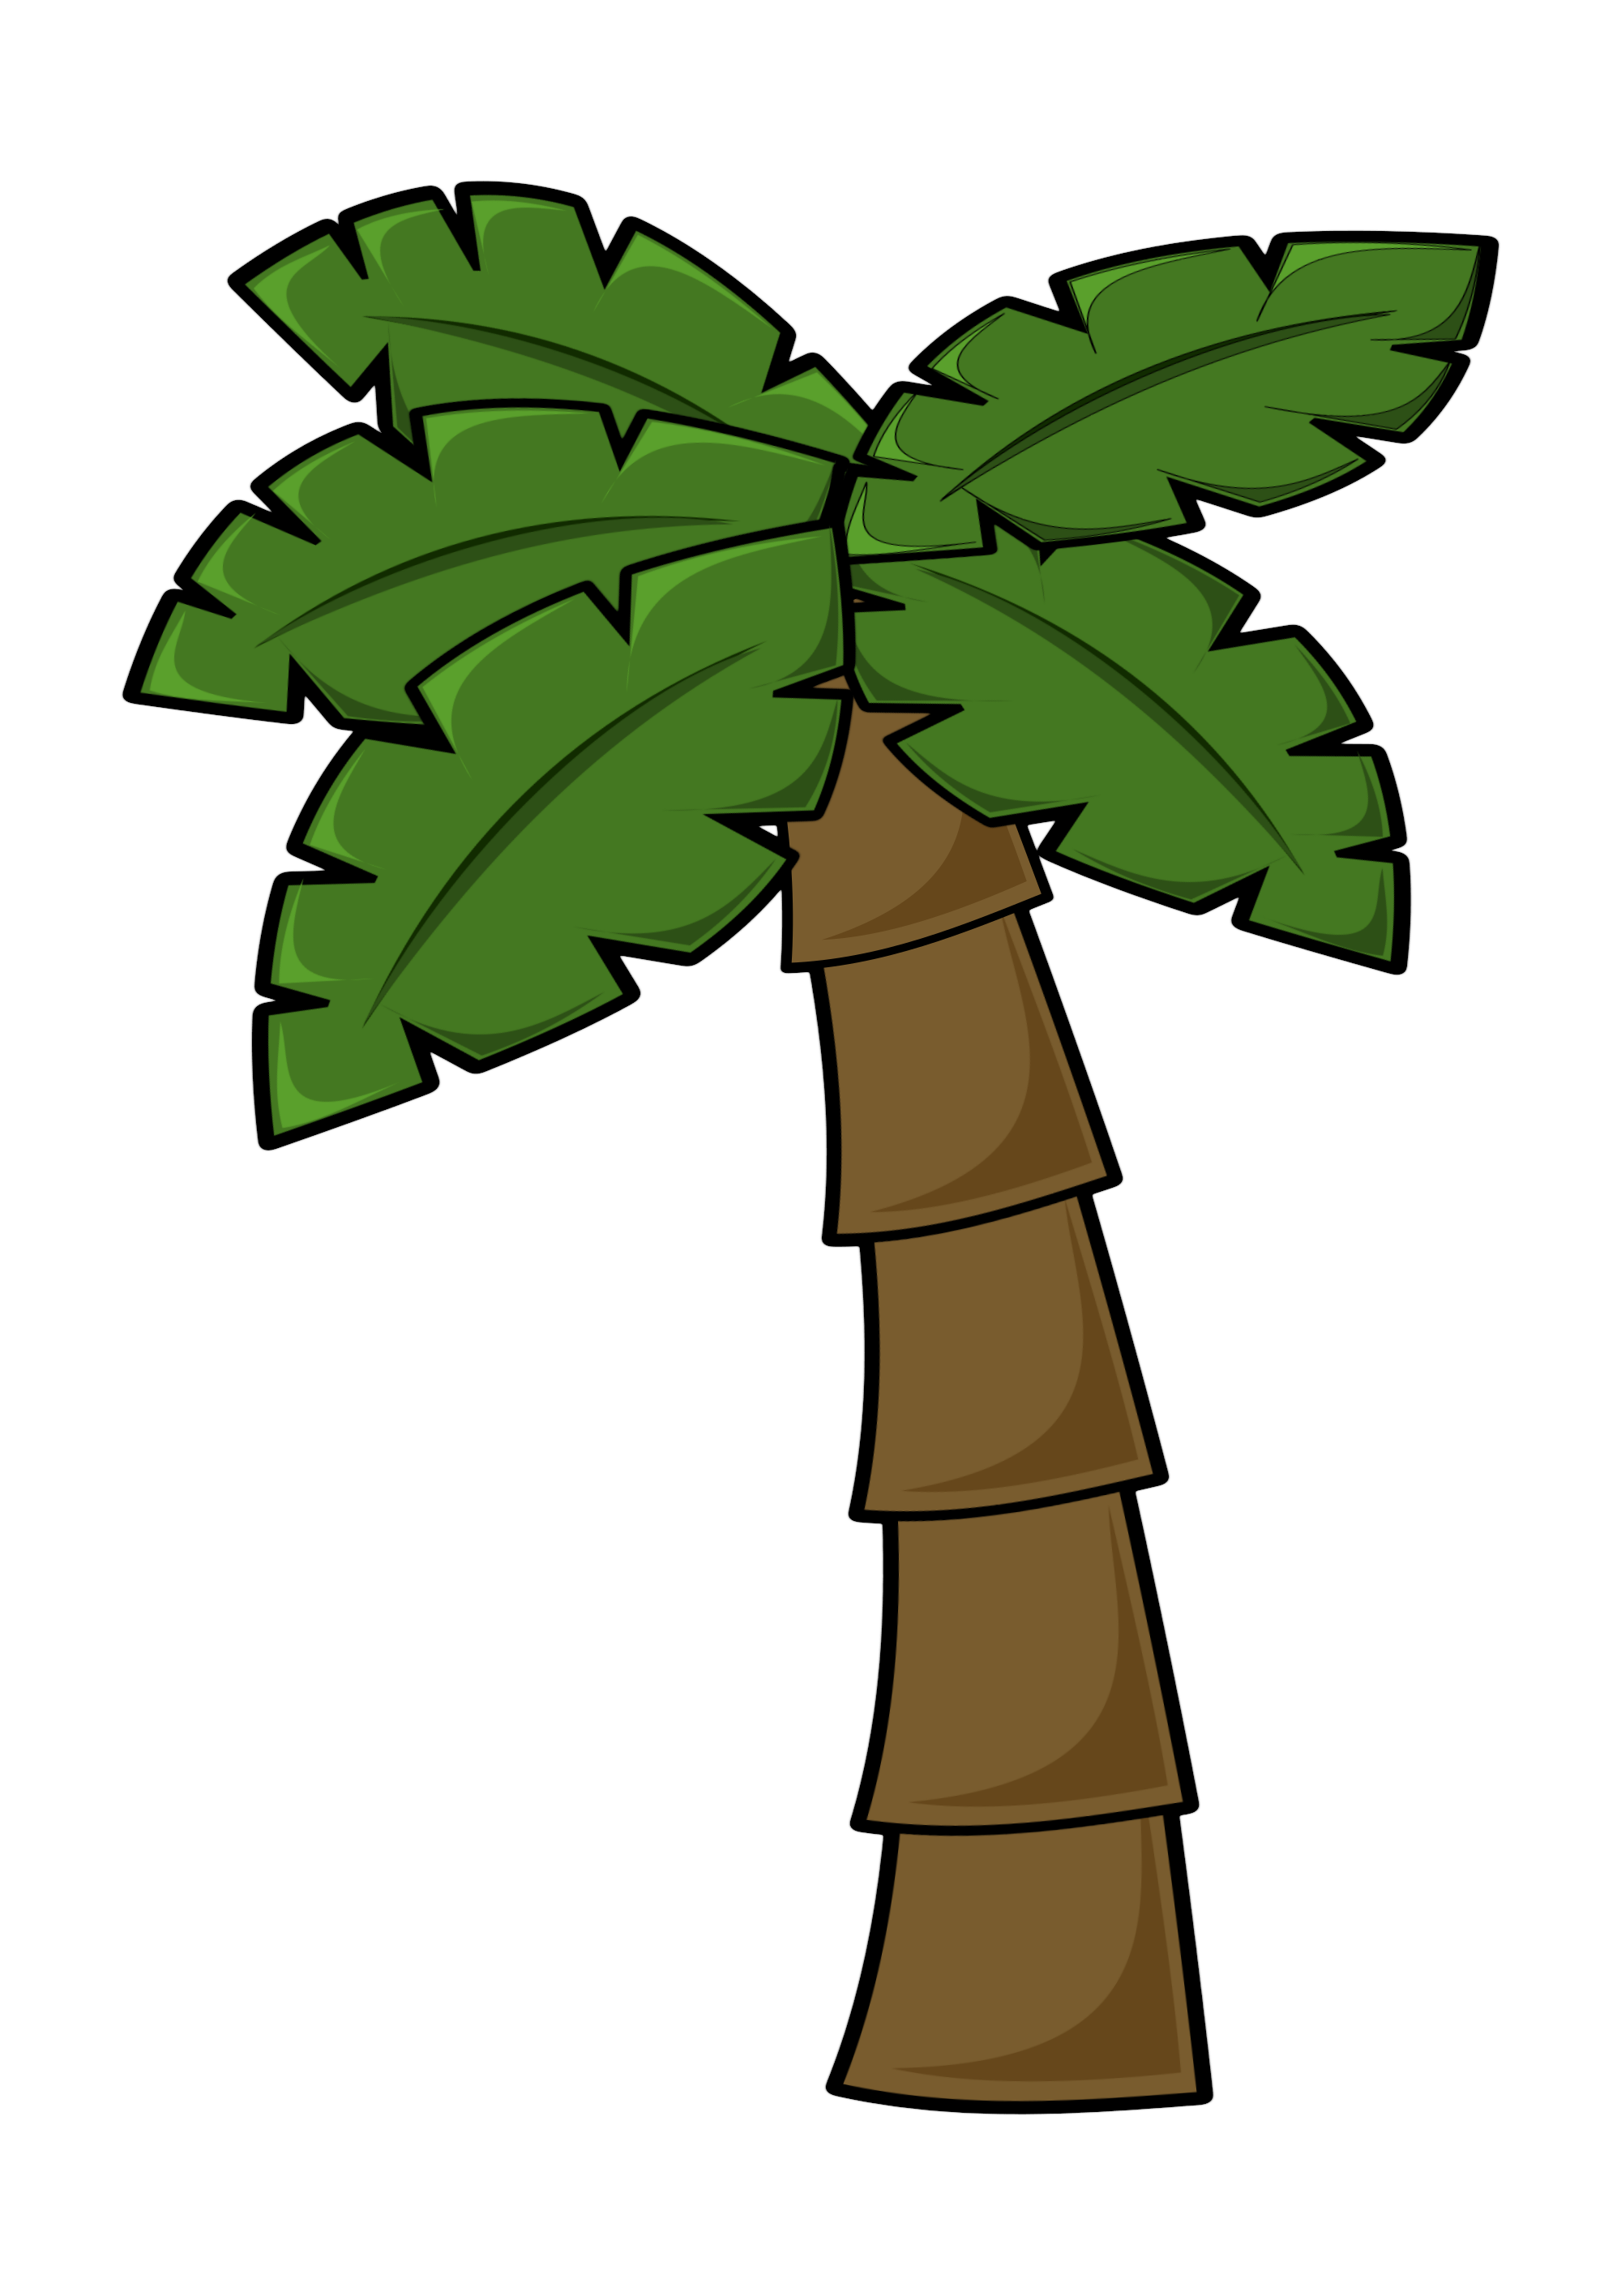 Cute tree clipart jpg transparent library Free Simple Cartoon Palm Tree Clipart Clipart PNG and Vector Image ... jpg transparent library